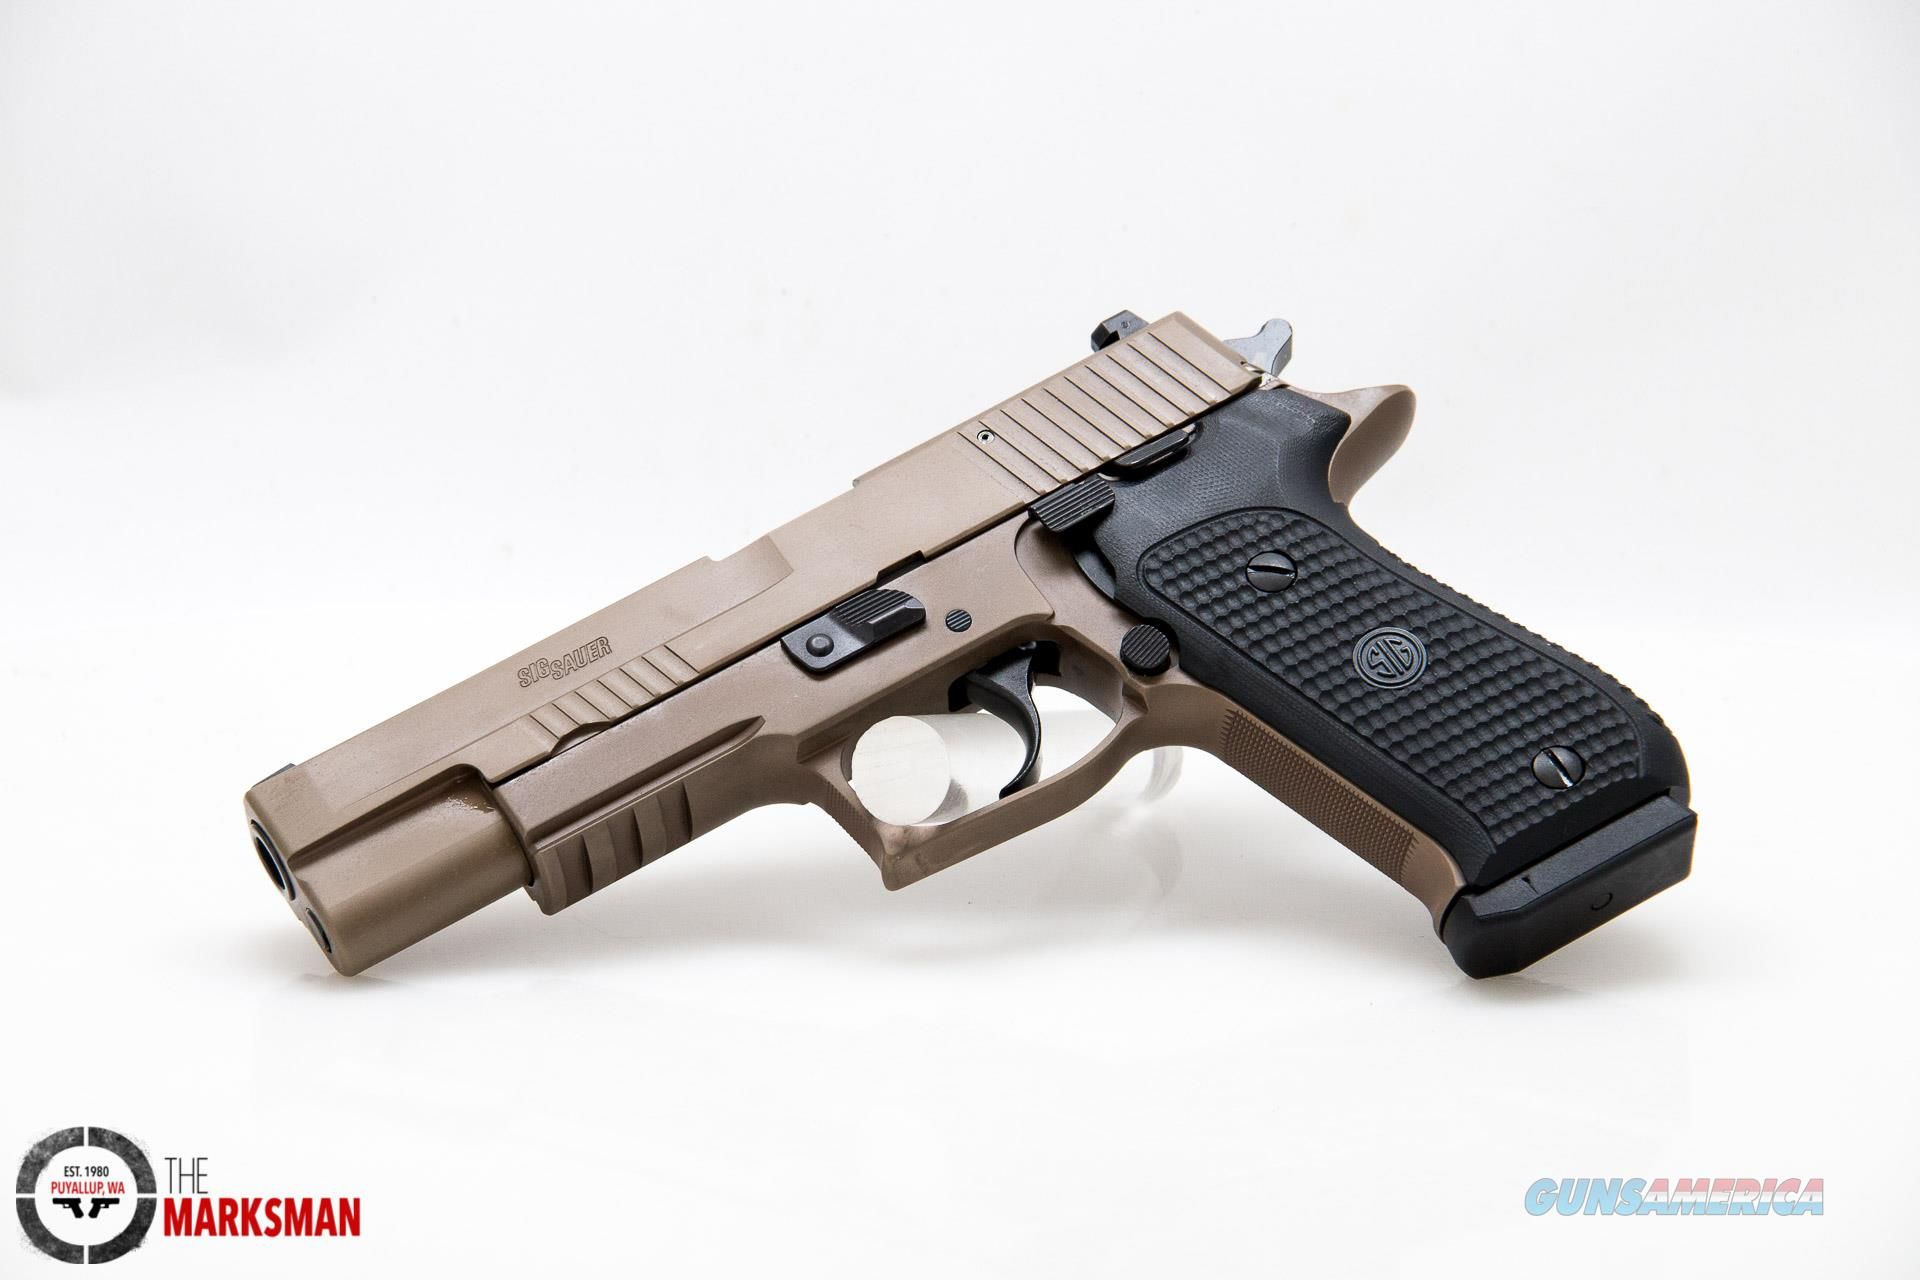 Sig Sauer P220 Emperor Scorpion, 10mm NEW Lipsey's Exclusive  Guns > Pistols > Sig - Sauer/Sigarms Pistols > P220